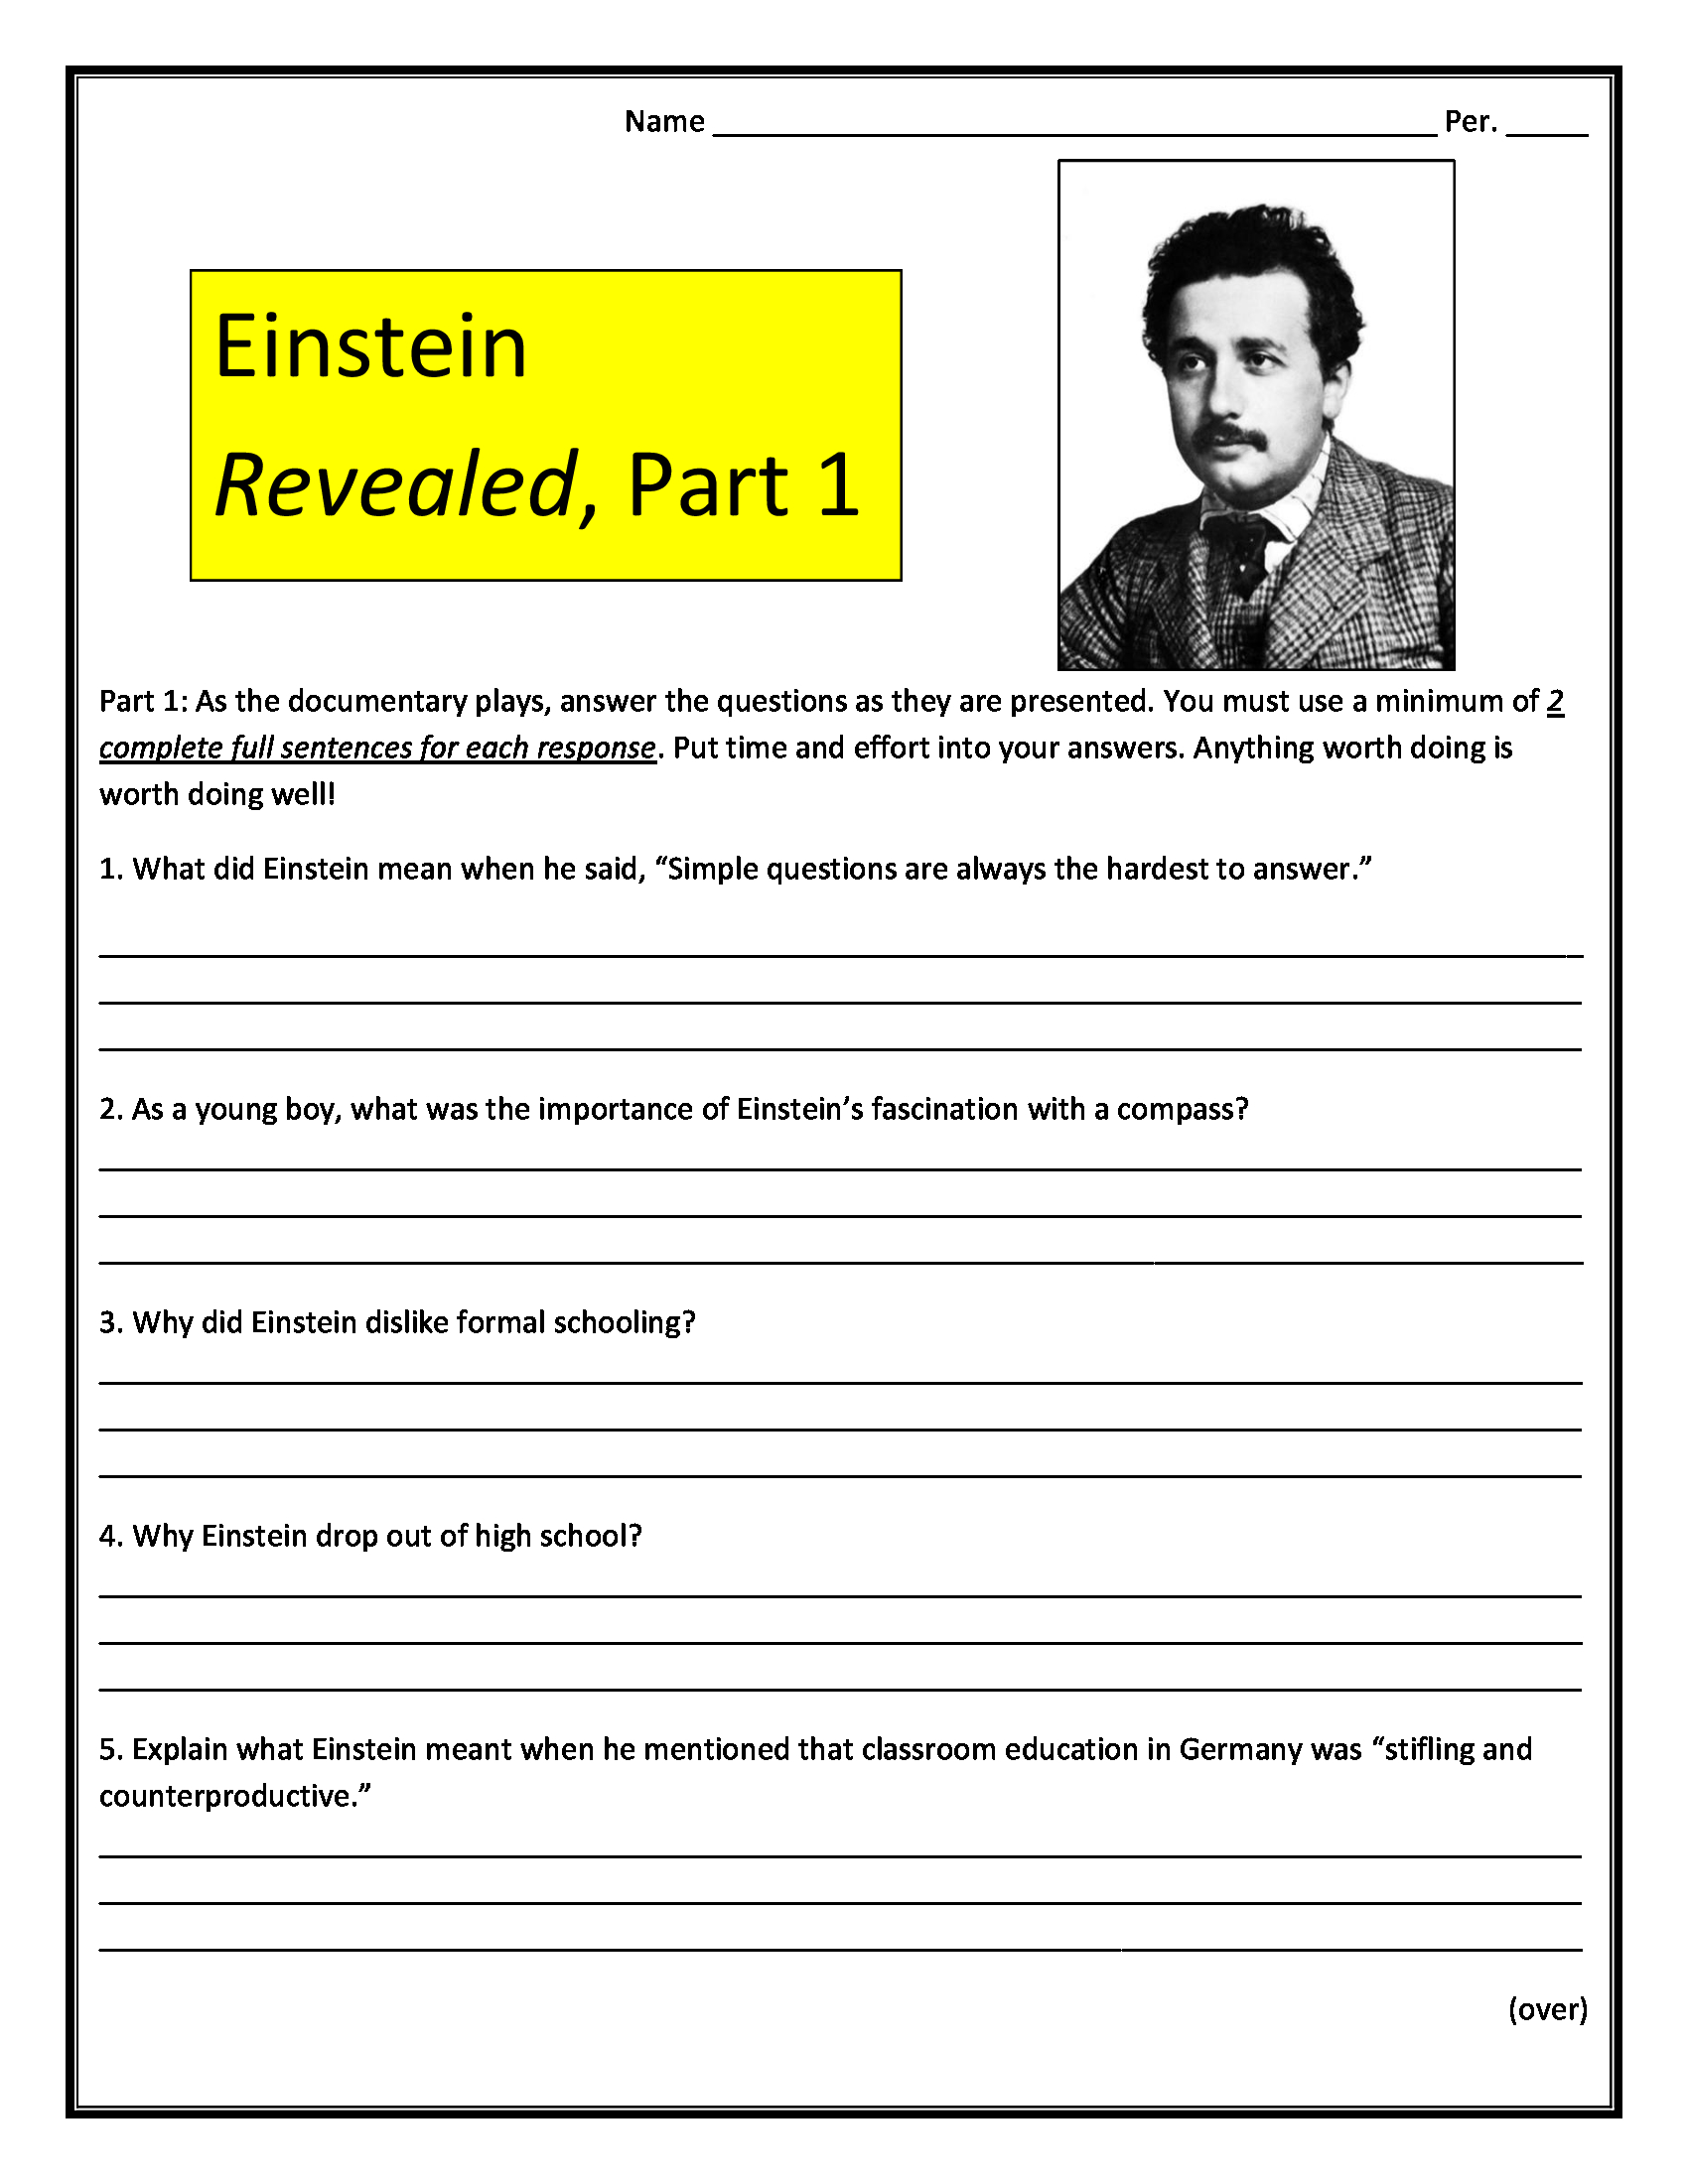 Einstein Revealed Part 1 Worksheet